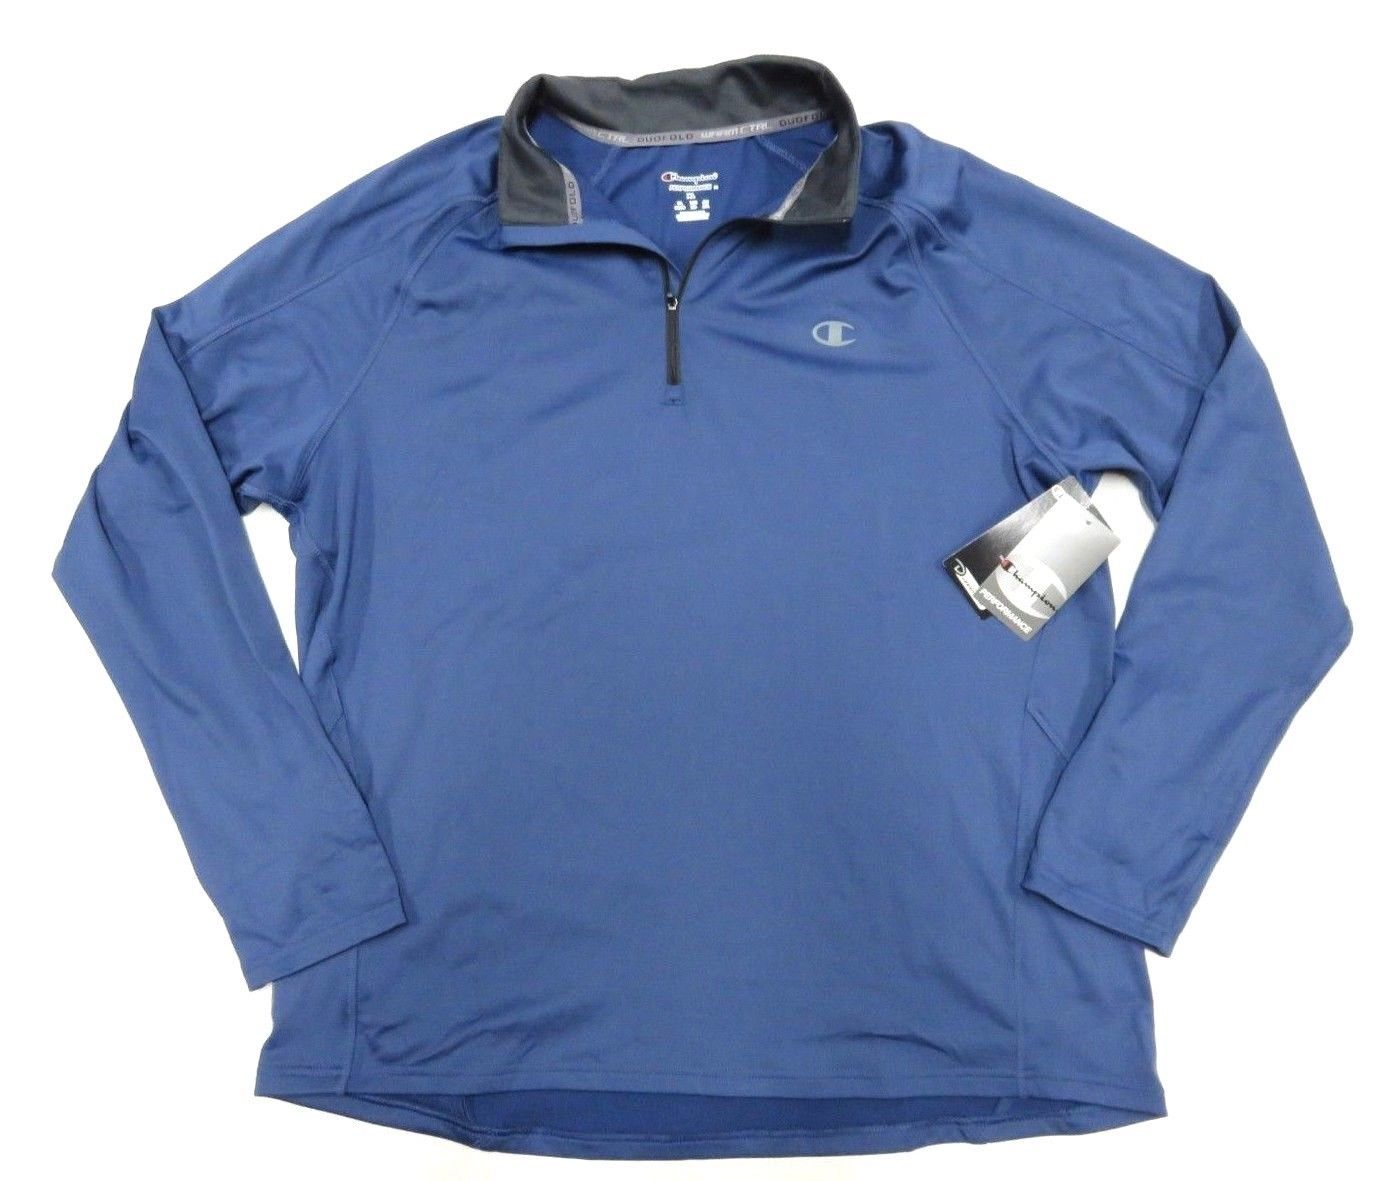 Primary image for NWT Champion Performance Outerwear Blue 1/4 Zip Up Pullover Jacket Adult Size XL